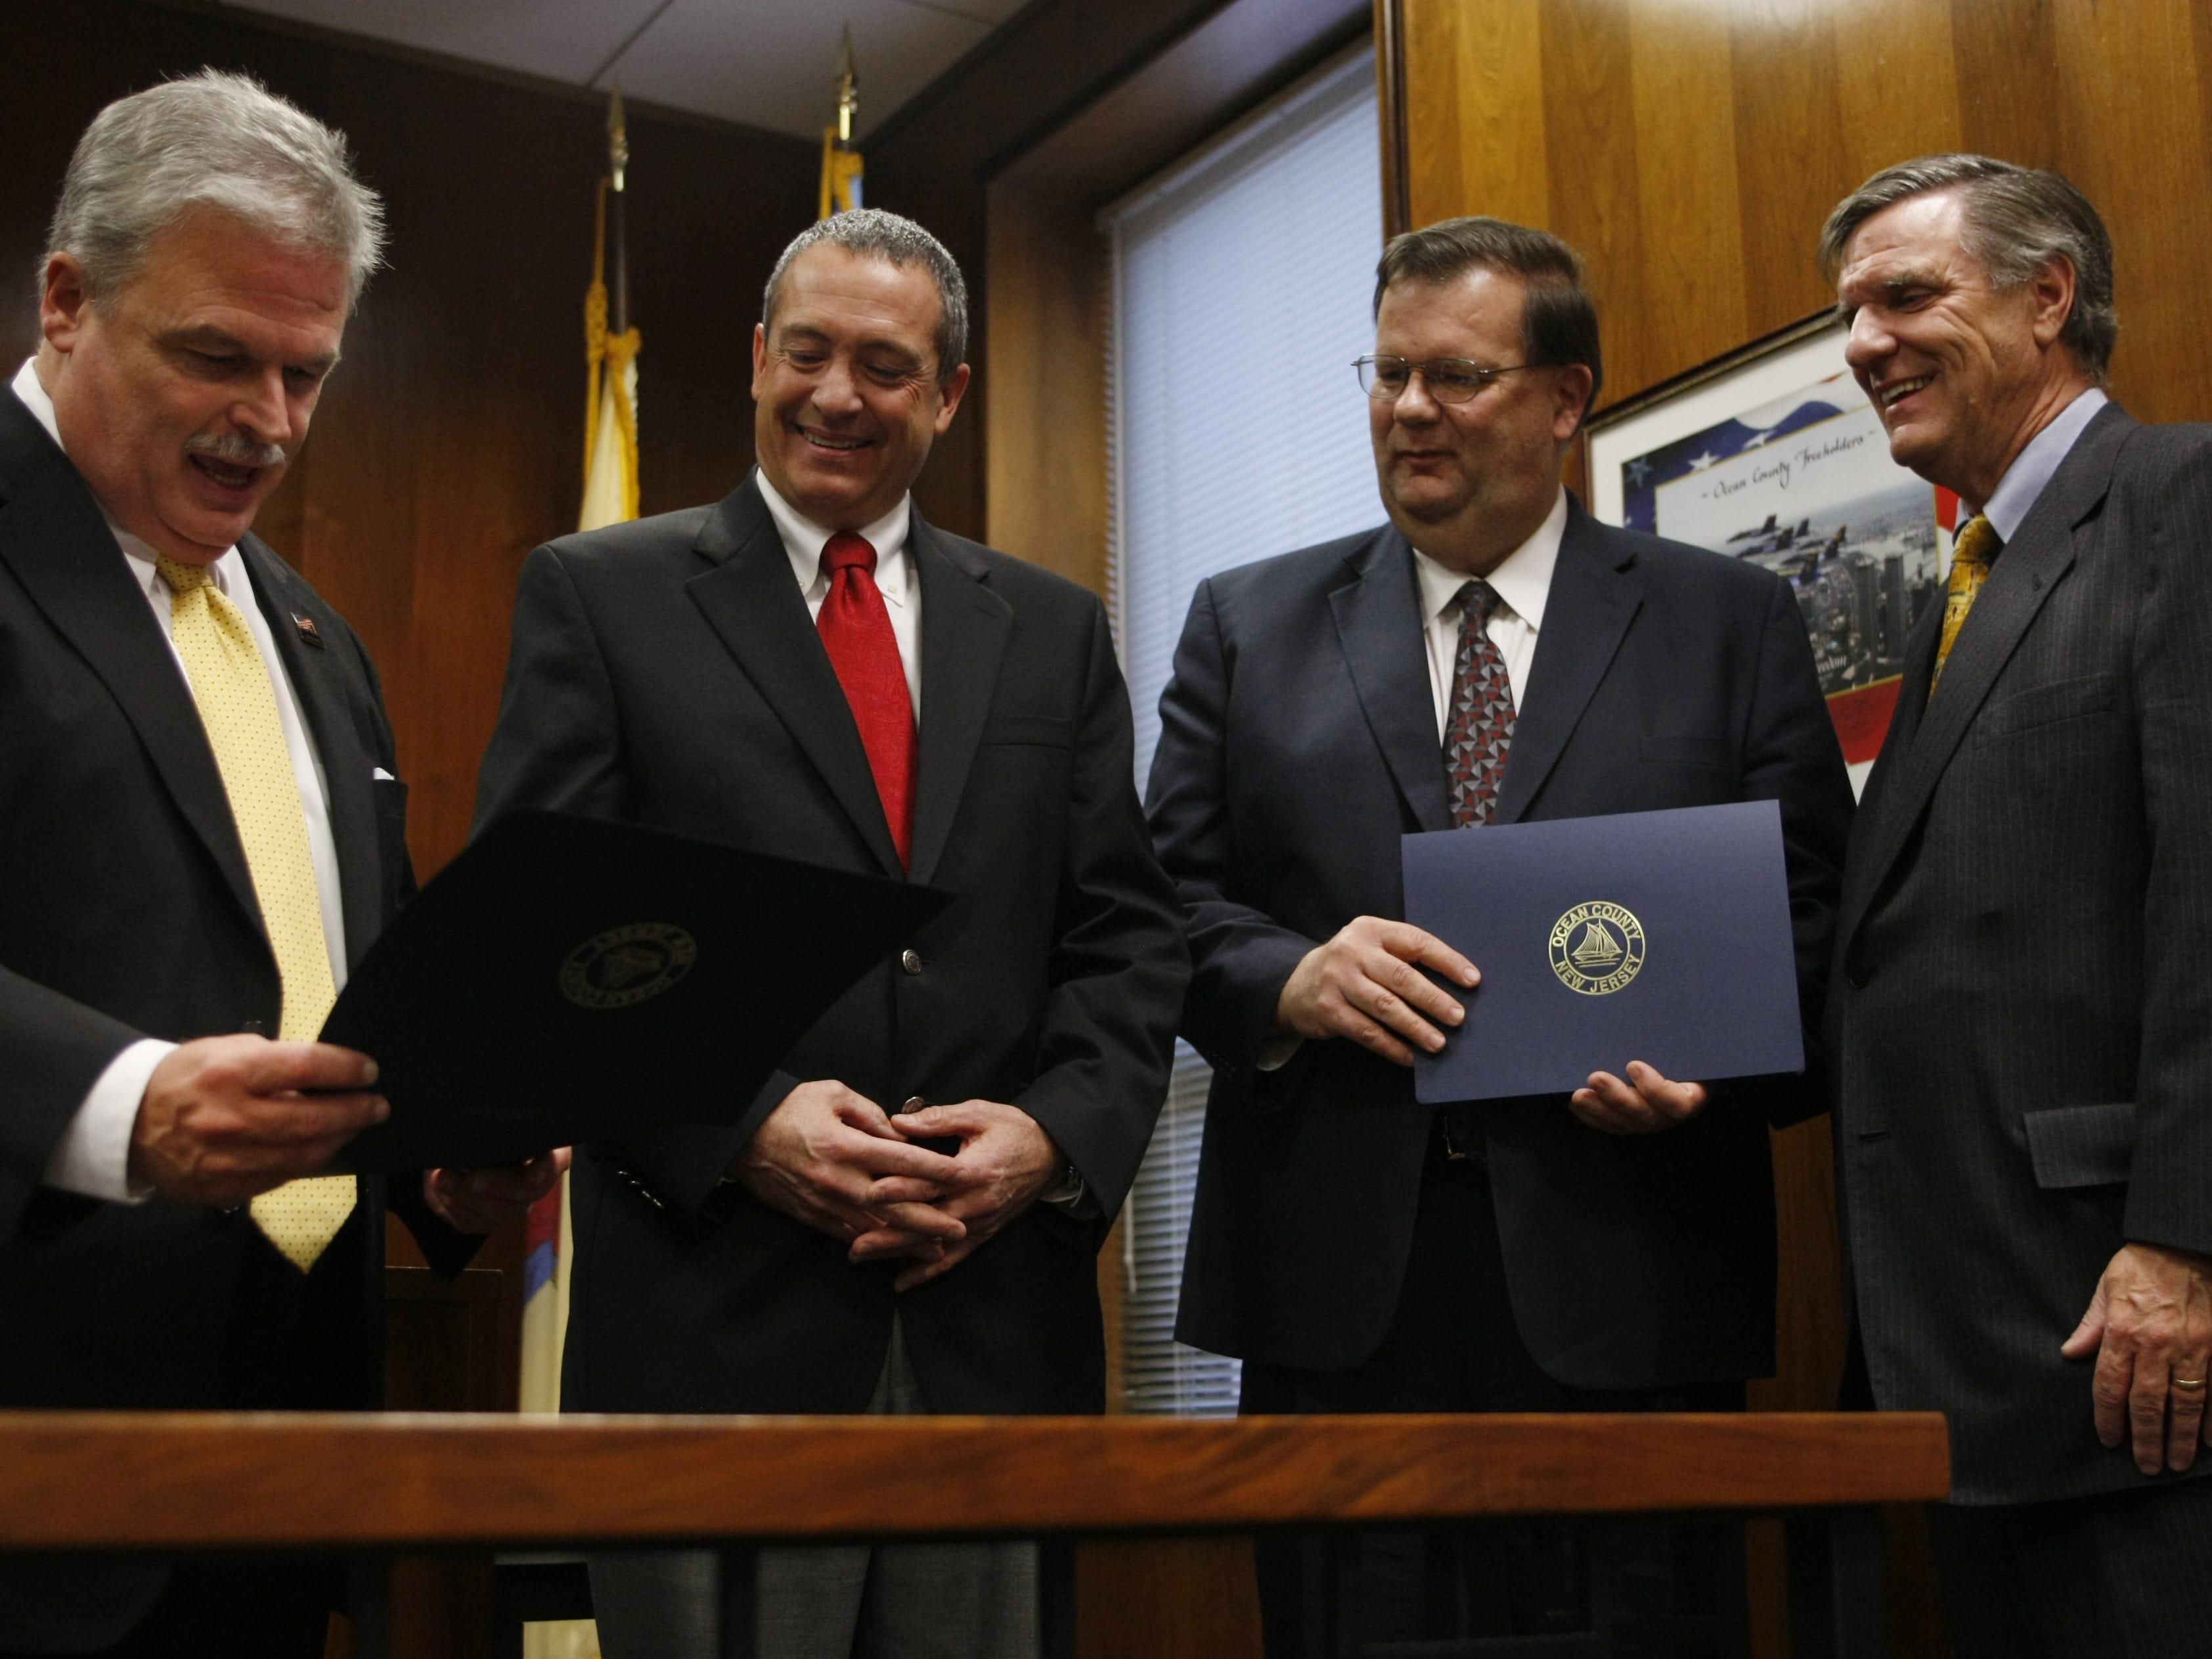 Scott M. Colabella, Ocean County Clerk, left, reads the certificate of election presented to  Freeholders, James F. Lacey, second from left, and John P. Kelly, as George Gilmore, right, Ocean County Republican chairman and chairman of the Ocean County Board of Elections, looks on, during the Ocean County Board of Chosen Freeholders 2011 Organization Meeting, Wednesday, January 5, 2011. STAFF PHOTO/MARY FRANK - TOMS RIVER - #109381- NEWS/WEB - 01/05/11.